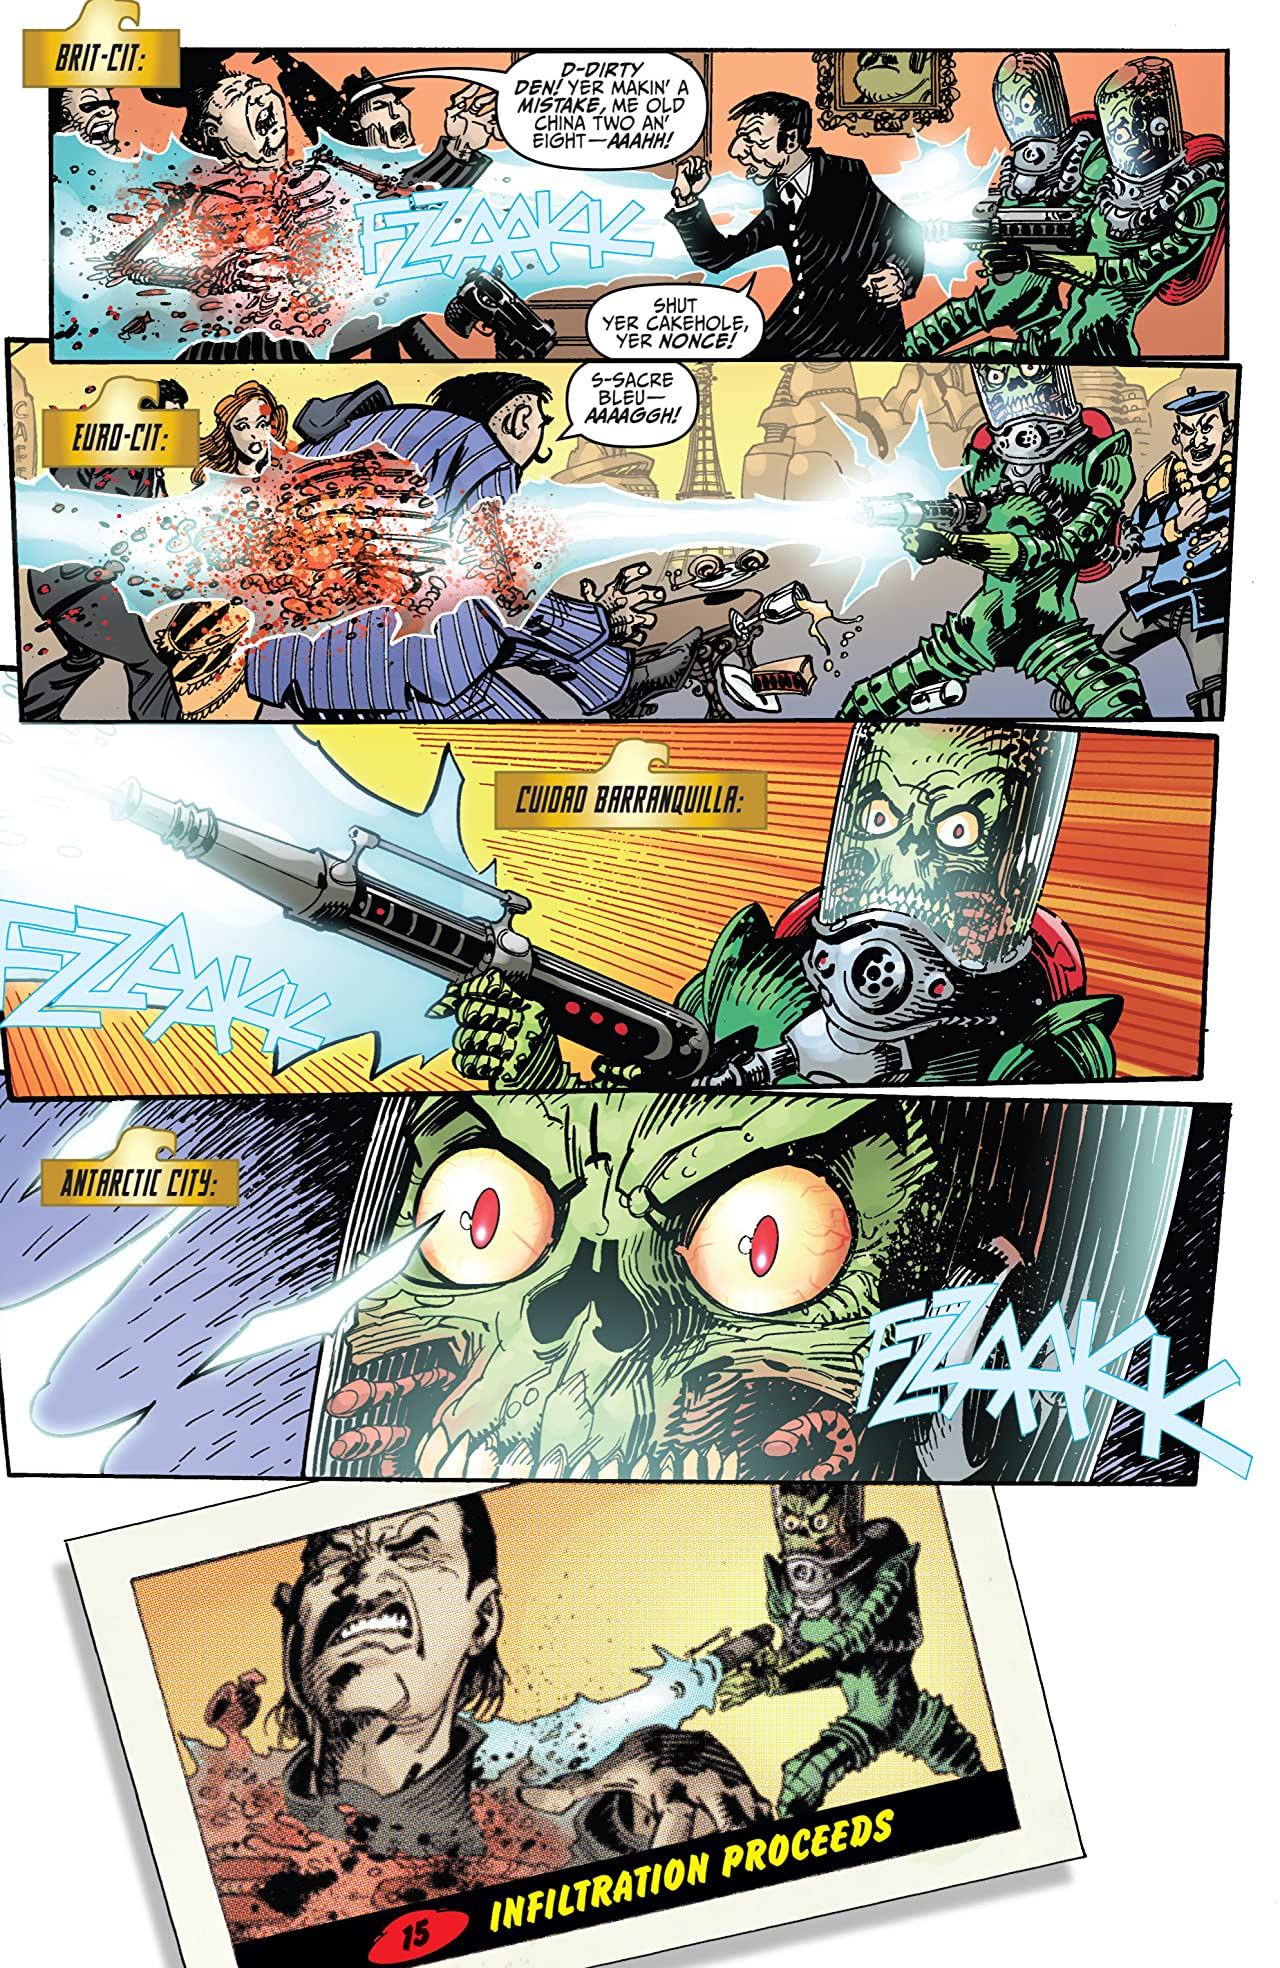 Mars Attacks Judge Dredd #2 (of 4)